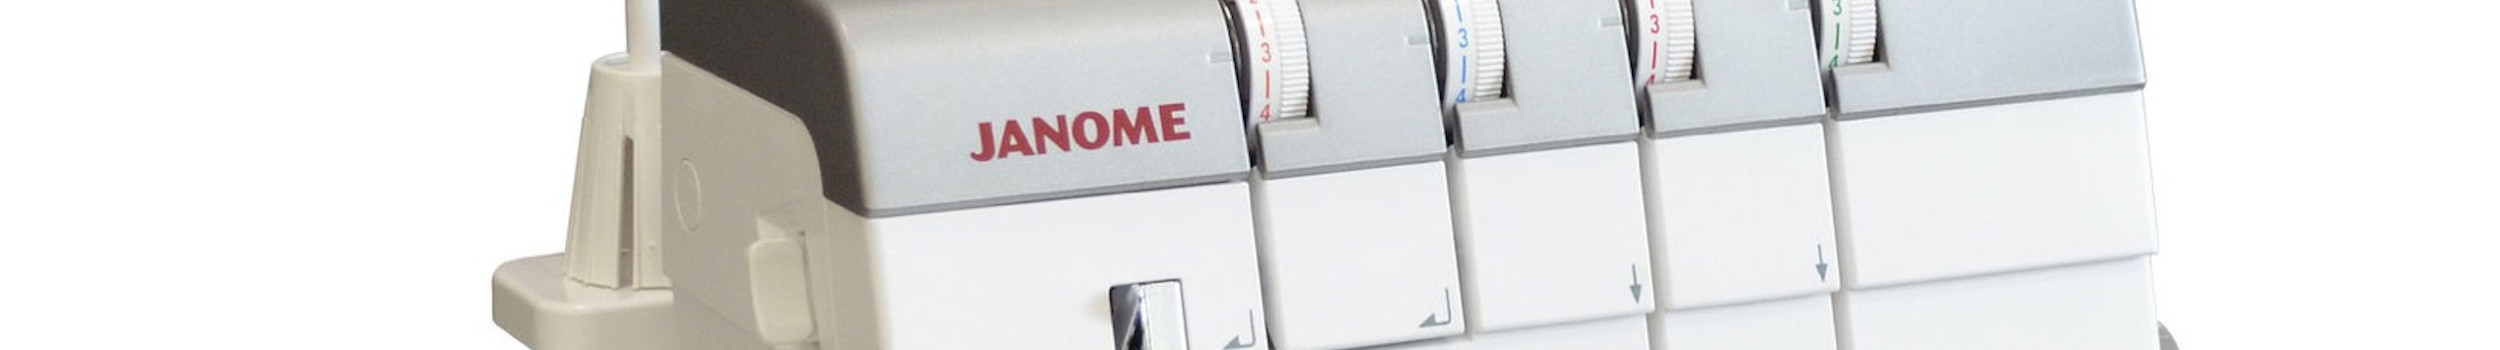 Janome AirThread 2000D Embroidery Machine